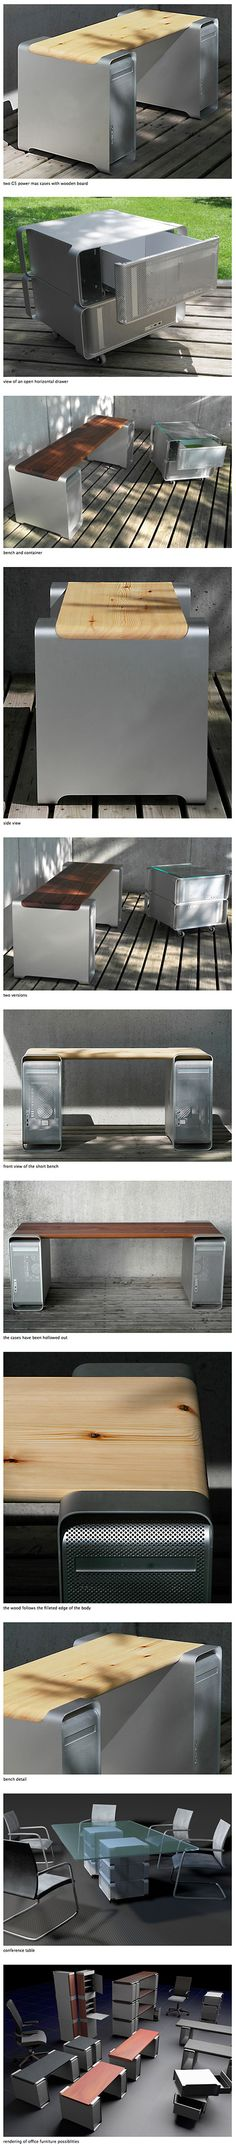 In an effort to extend the useful life of the iconic aluminum-bodied Apple Power Mac G5 (2003-2006), designer Klaus Geiger has created BENCHMA[®]C, a line of furniture made out of Power Mac G5 cases. To convert the computers into furniture, Geiger first removes the internals. He then adds drawers to the cases, and pairs the Power Macs with wood planks and glass to form benches, tables, and other furniture.